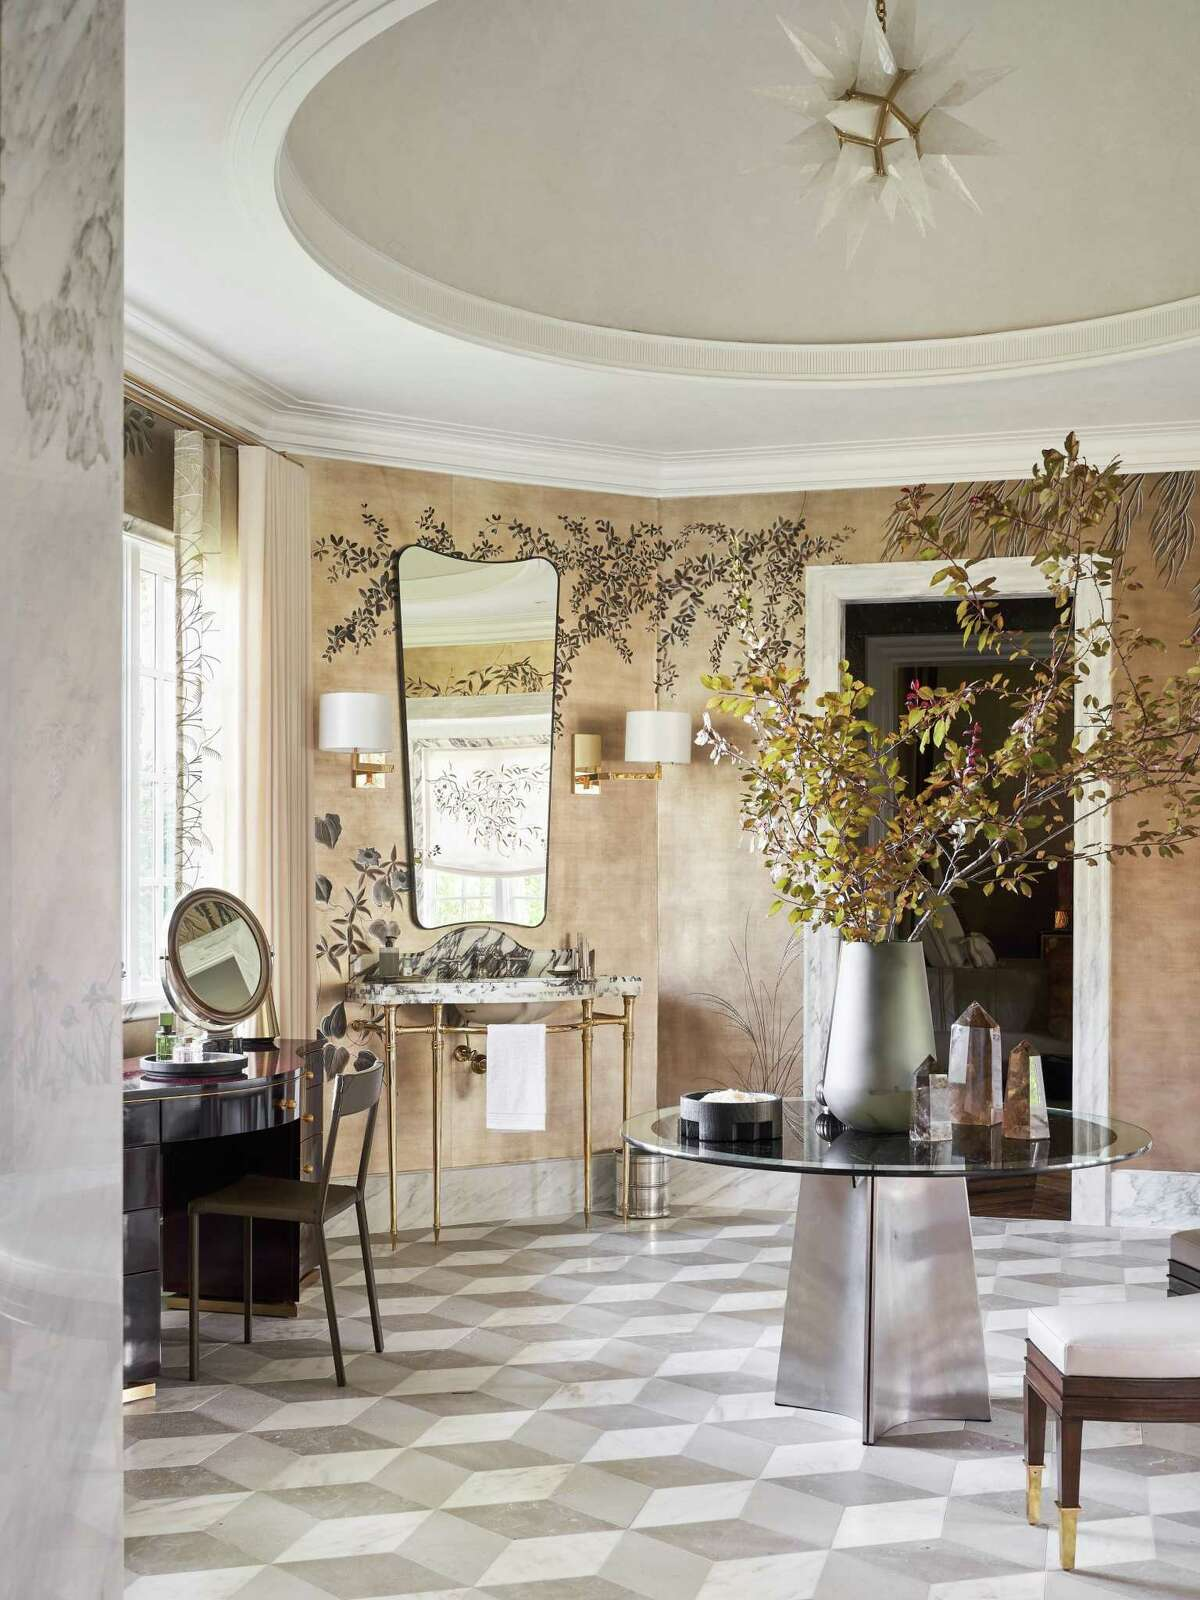 Doniphan Moore Interiors designed the primary bathroom, using de Gournay wallpaper and embroidered blinds made to match the floral design in the wallpaper. The Shade Store is a major sponsor and made all of the window treatments in the home.